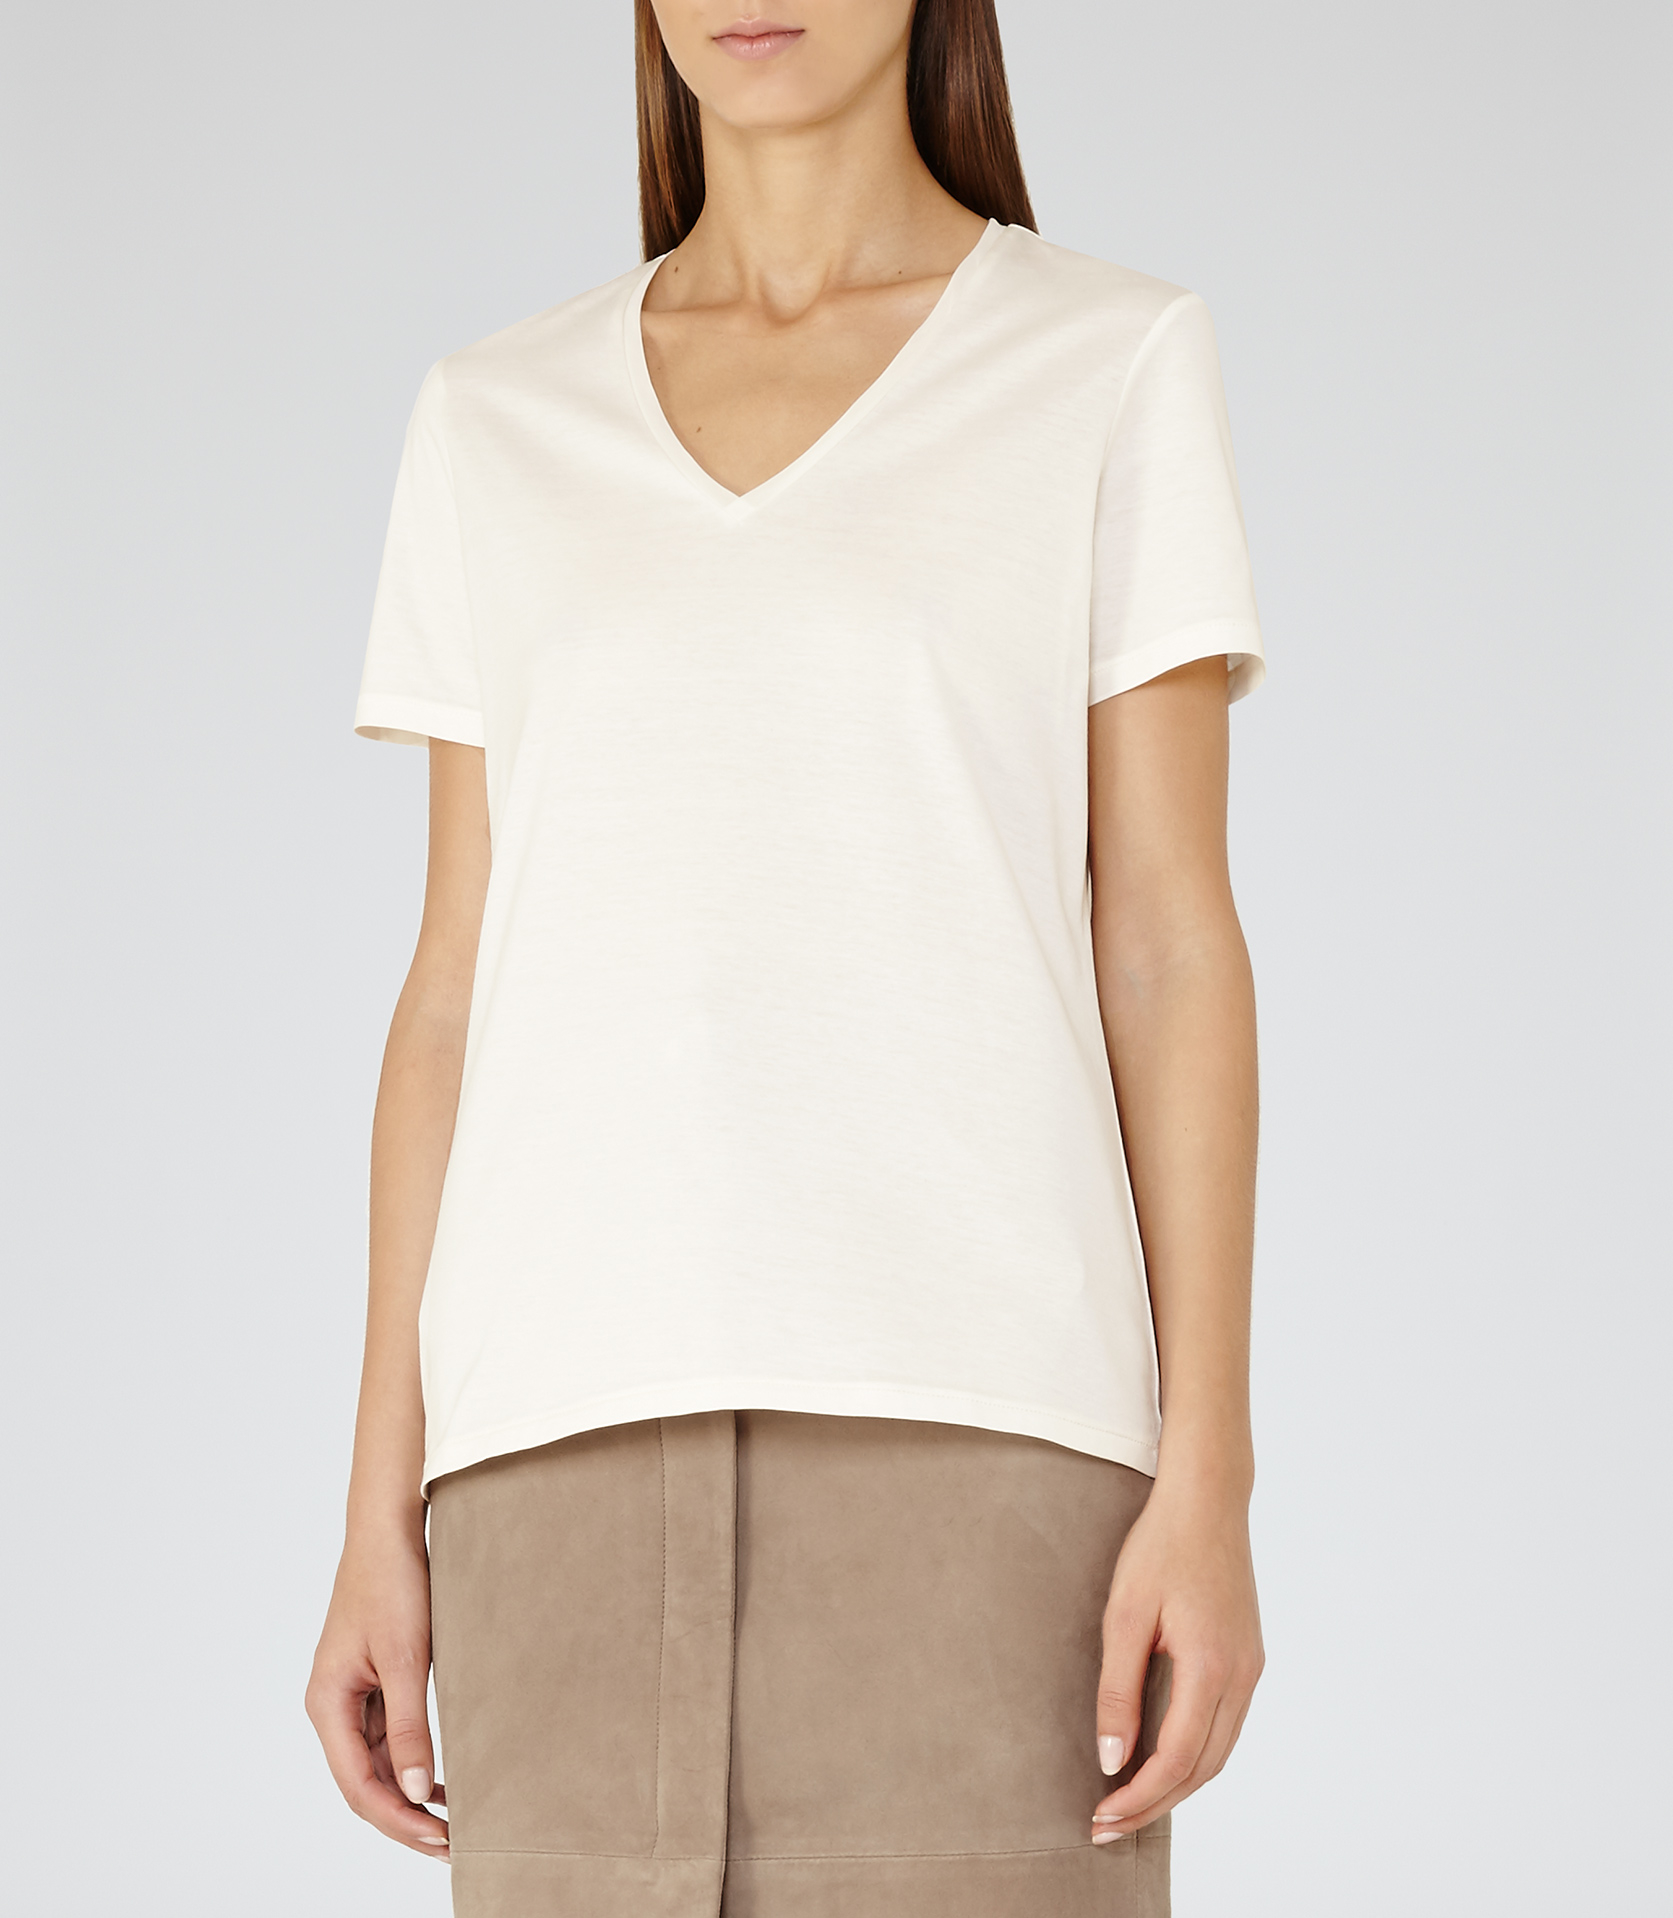 Reiss Ren V-neck T-shirt in White | Lyst